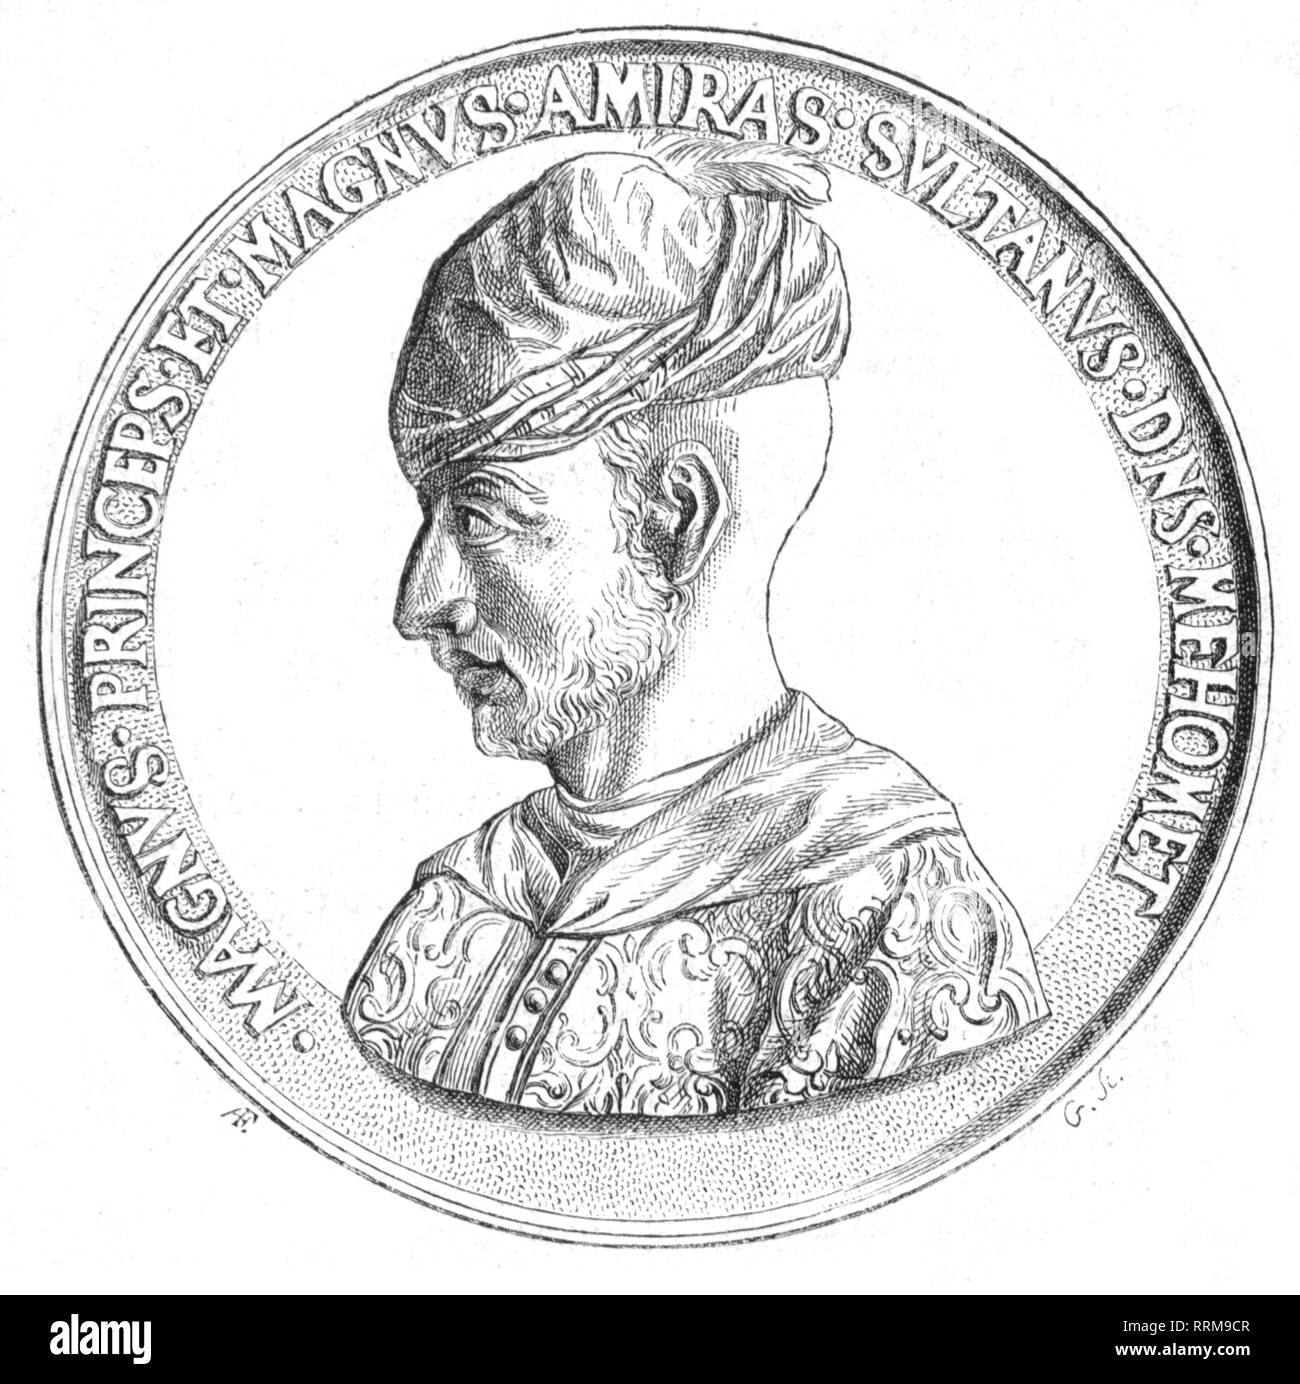 Mehmed II Fatih, 30.3.1432 - 3.5.1481, Sultan of the Ottoman Empire 3.2.1451 - 3.5.1481, portrait, medal by Jehan Triaudet de Selongey, 1454 - 1455, obverse, wood engraving, 1868, Additional-Rights-Clearance-Info-Not-Available - Stock Image